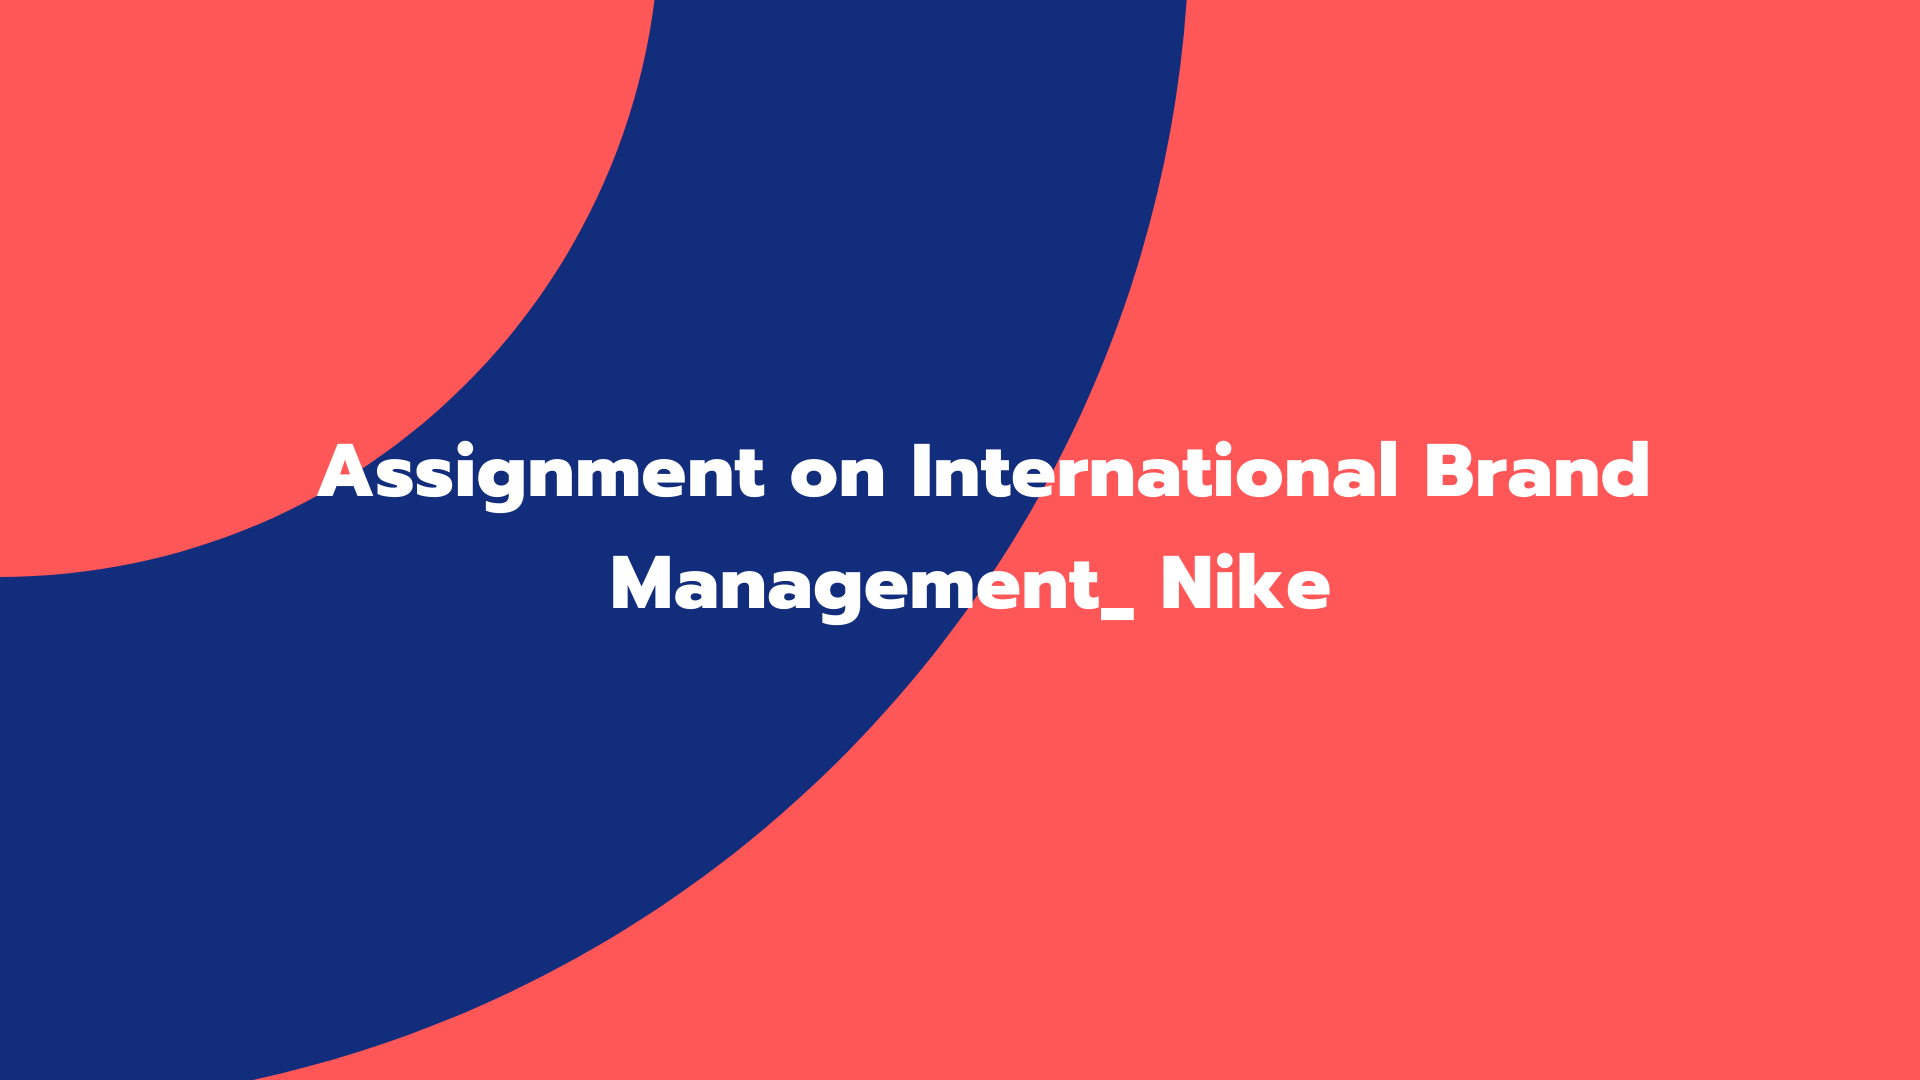 Assignment on International Brand Management_ Nike